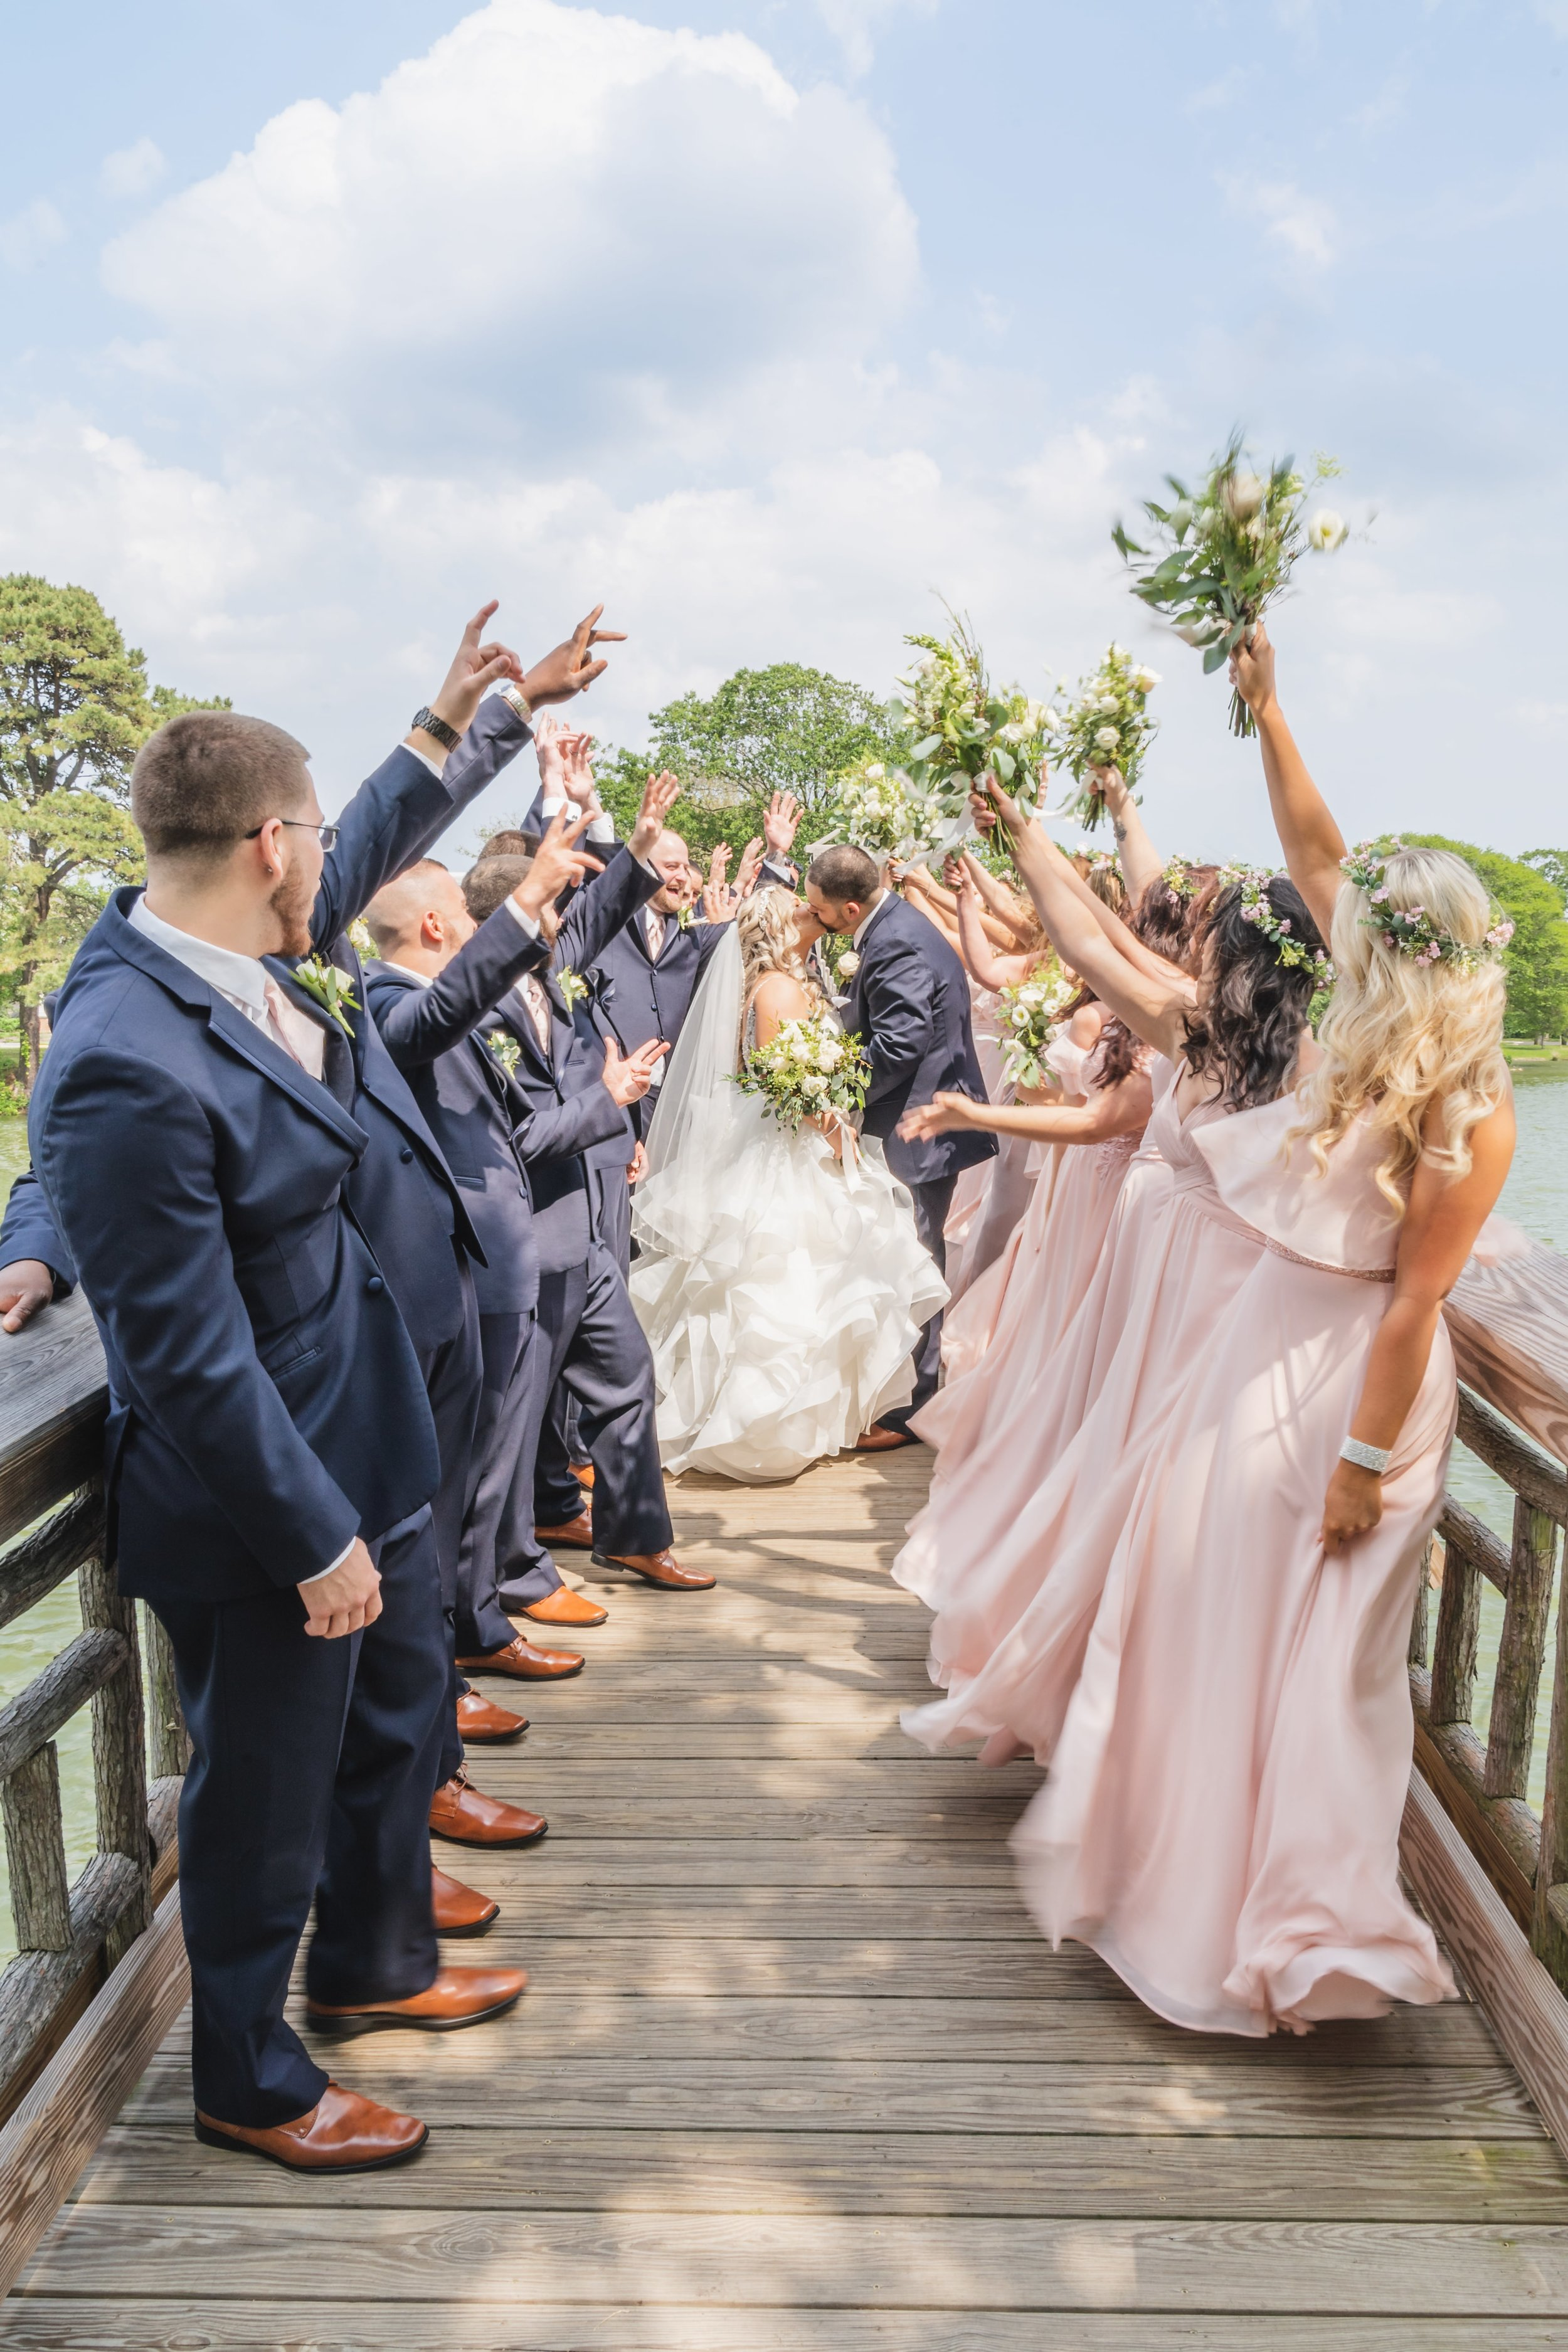 Bridal party lining a pier on either side of the of the bride and groom as they share a kiss as a married couple.